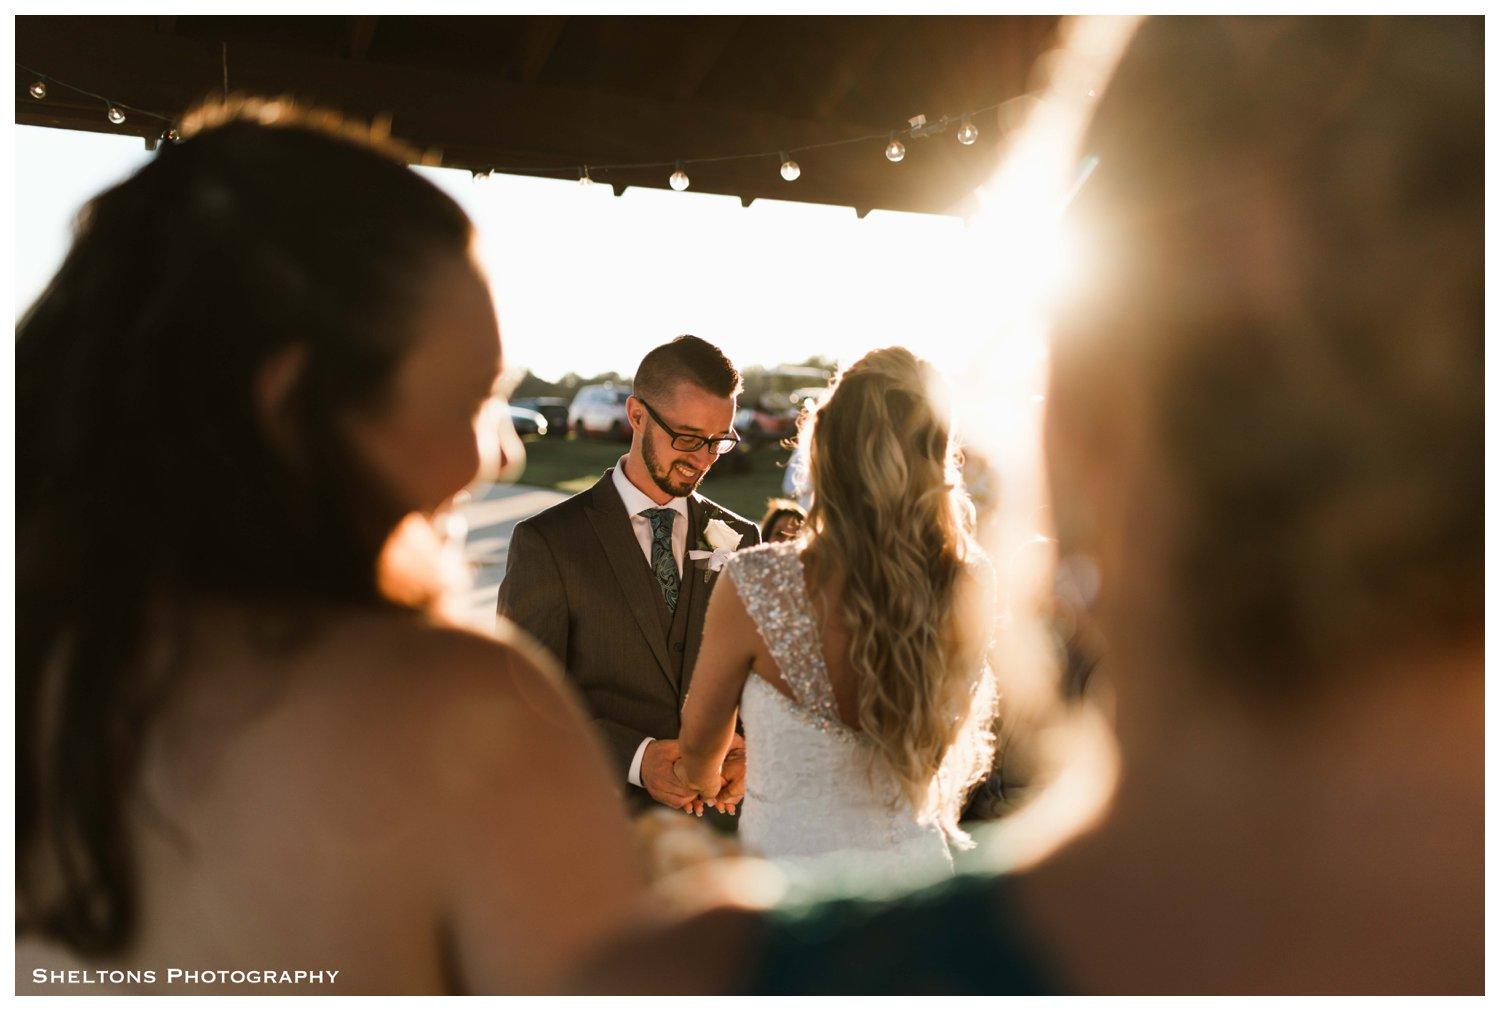 10-selah-inn-talco-wedding-photography.jpg